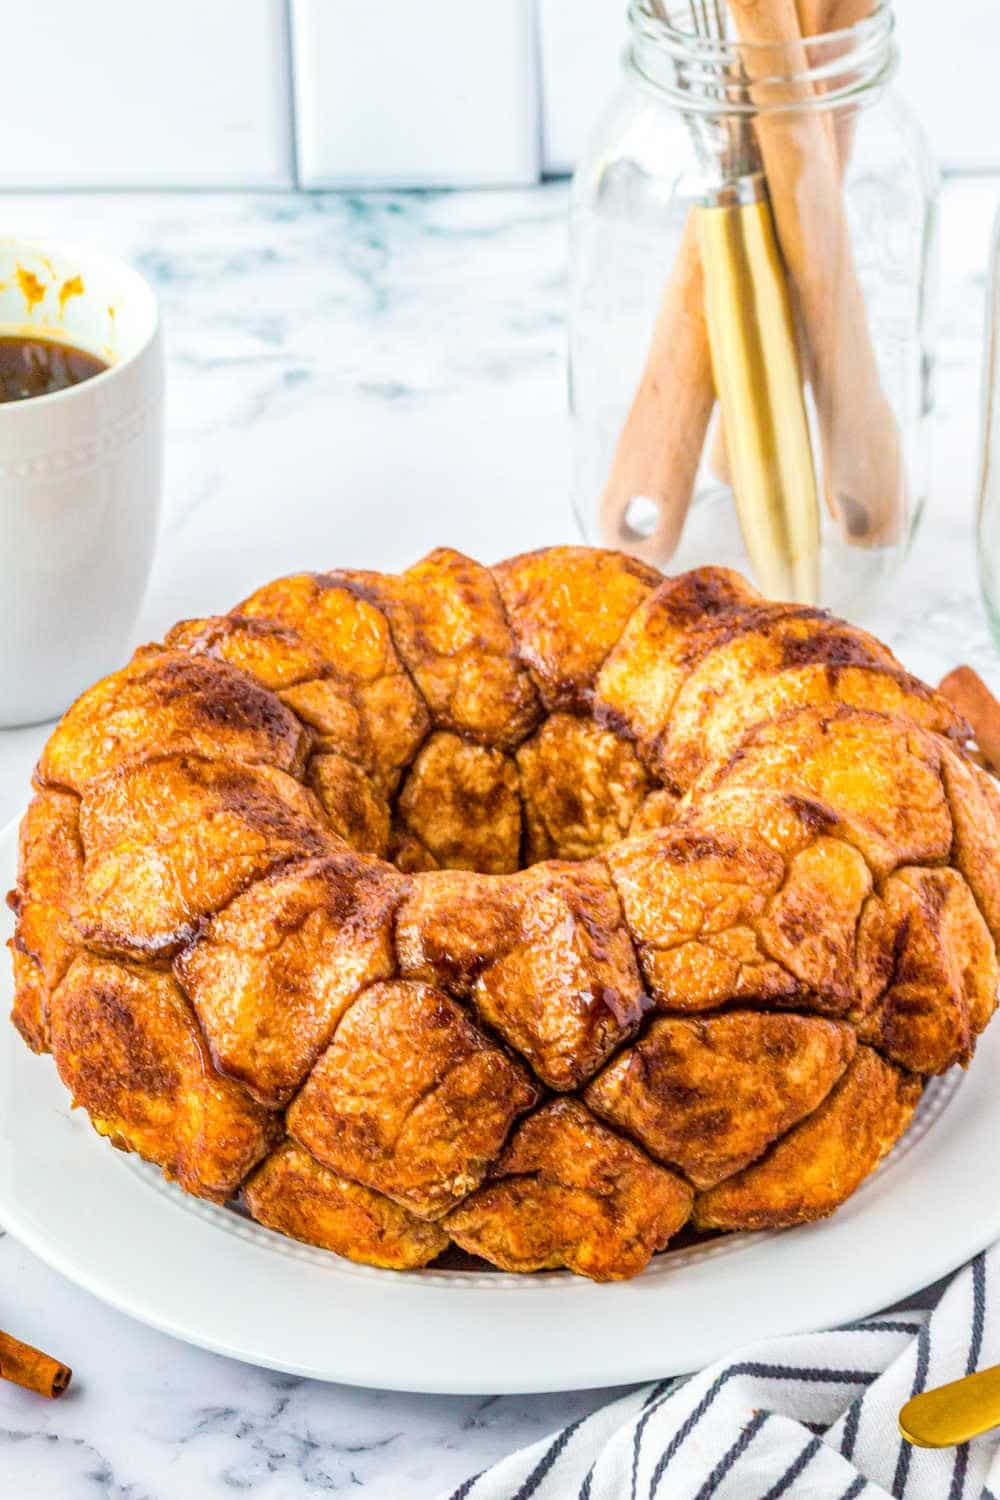 Fresh from the pan Monkey Bread on a white plate next to a blue and white striped towel.